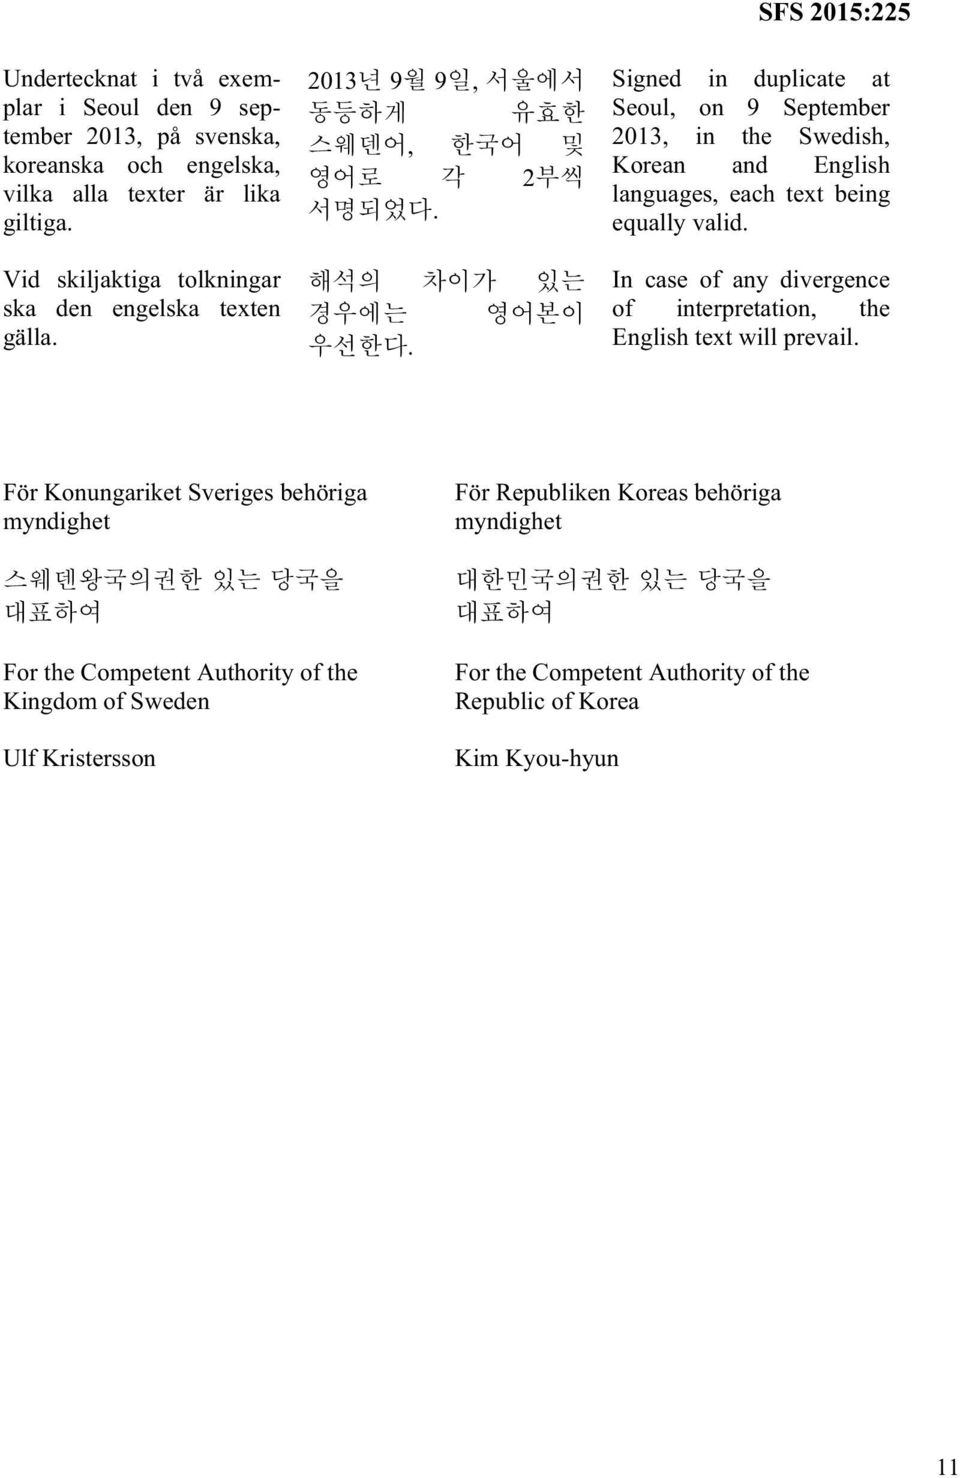 . SFS 2015:225 Signed in duplicate at Seoul, on 9 September 2013, in the Swedish, Korean and English languages, each text being equally valid.